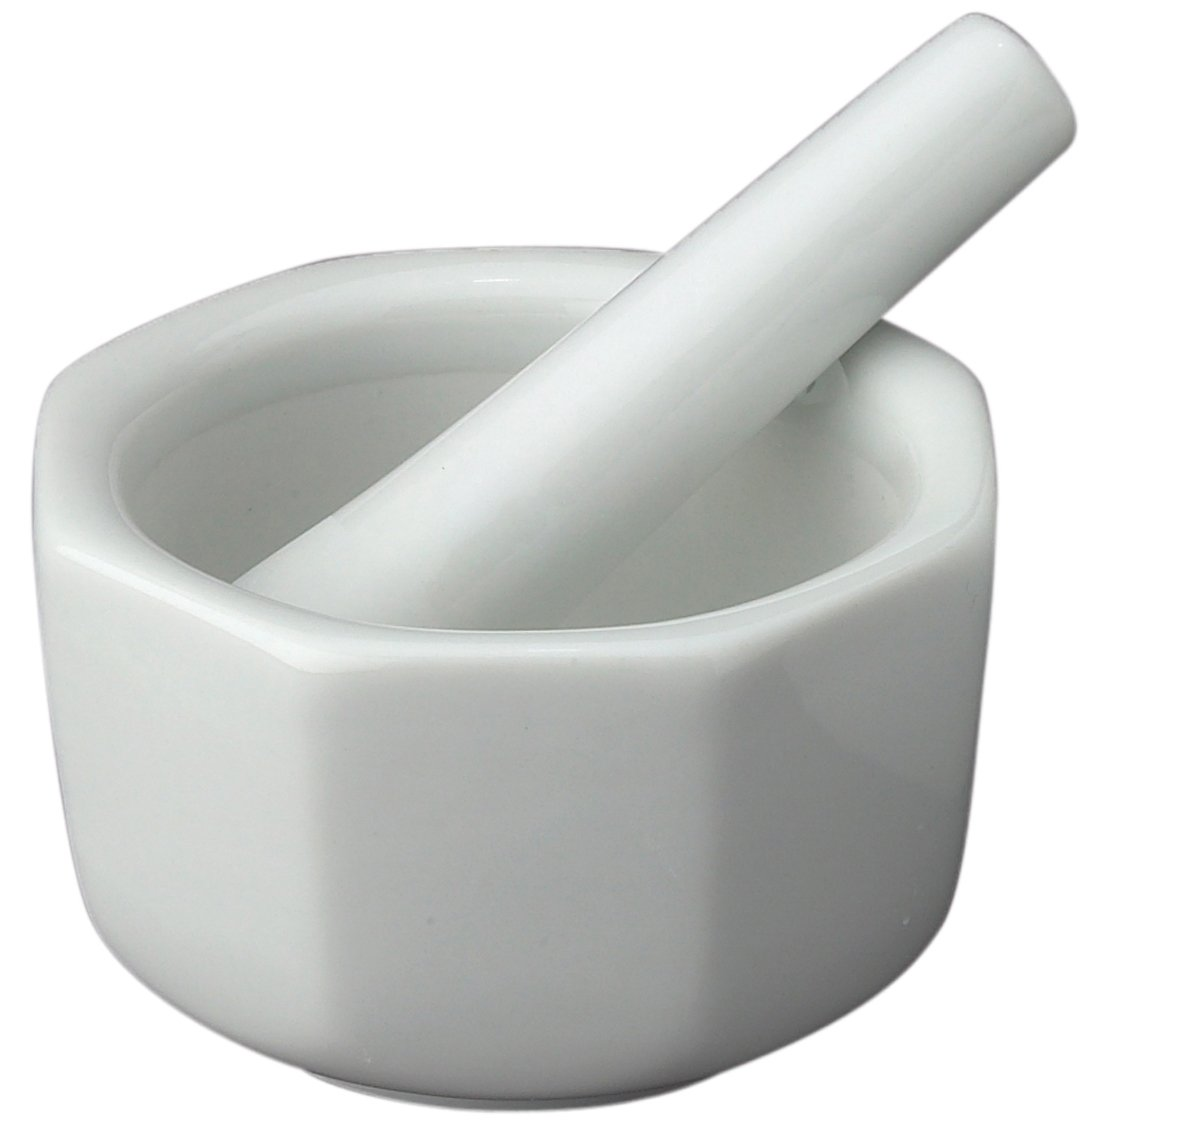 Amazon.com | HIC Octagonal Mortar and Pestle Spice Herb Grinder ... for Laboratory Mortar And Pestle  156eri